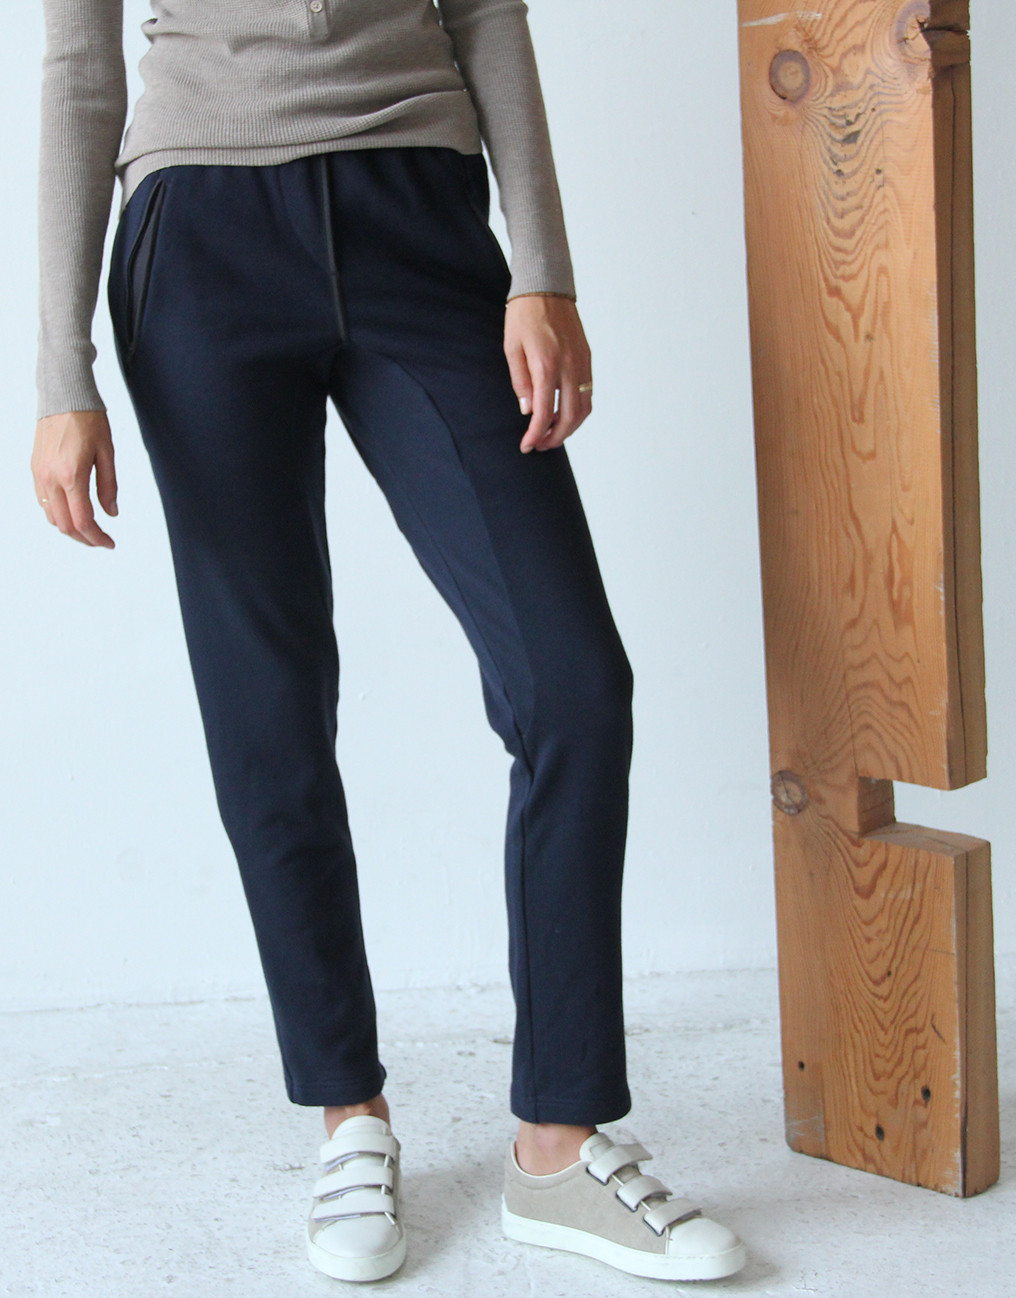 WONDROUS – NAVY KNIT TRAVEL PANT